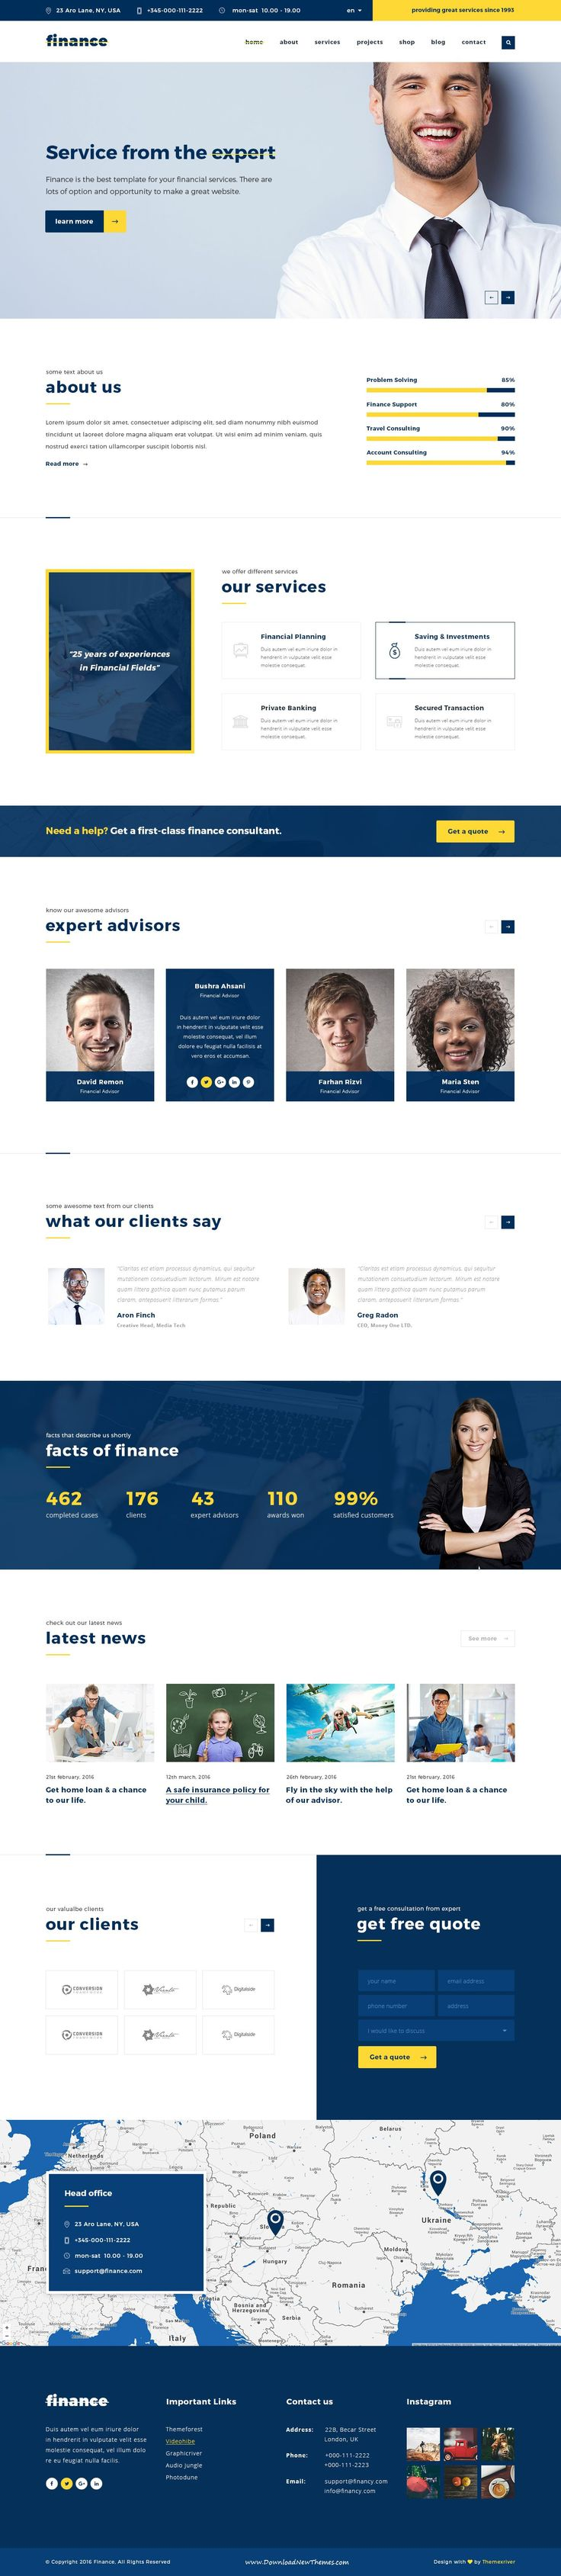 Finance is the Perfect Finance, Consulting & Business PSD Template. This is a business template that is help full for online presence for #Corporate #Business and #Financial Firms. #psdtemplate